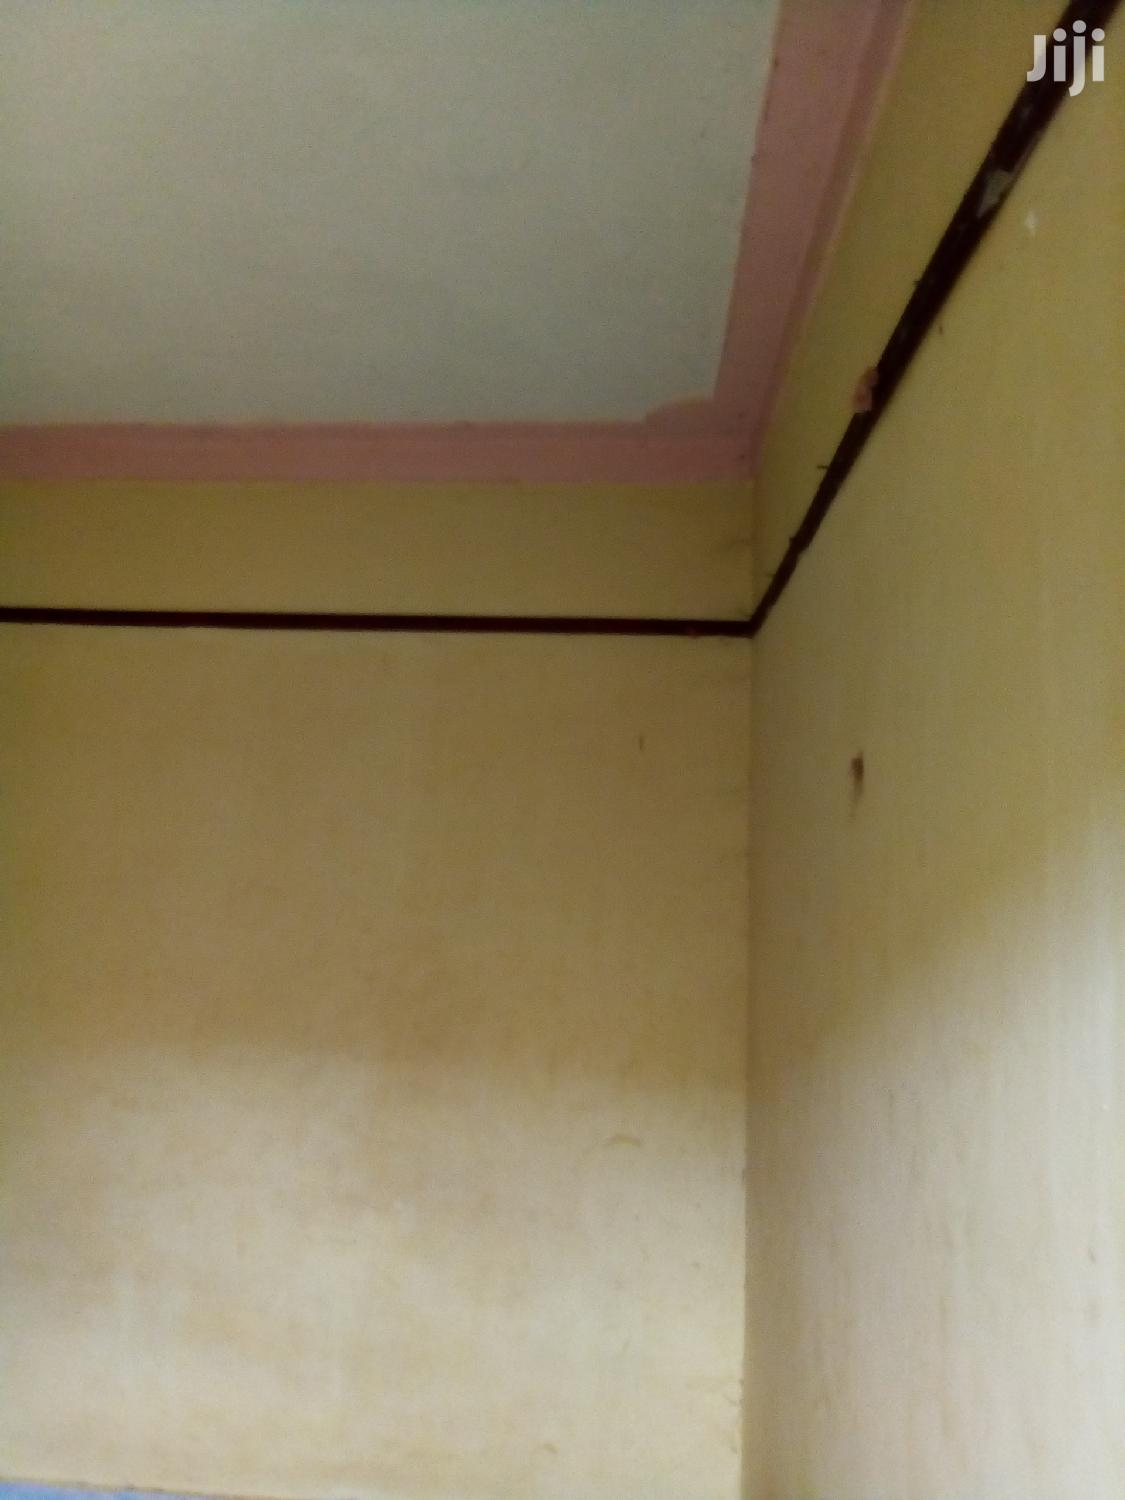 Single Room for Rent in Kitintale With a Toilet Inside | Houses & Apartments For Rent for sale in Kampala, Central Region, Uganda